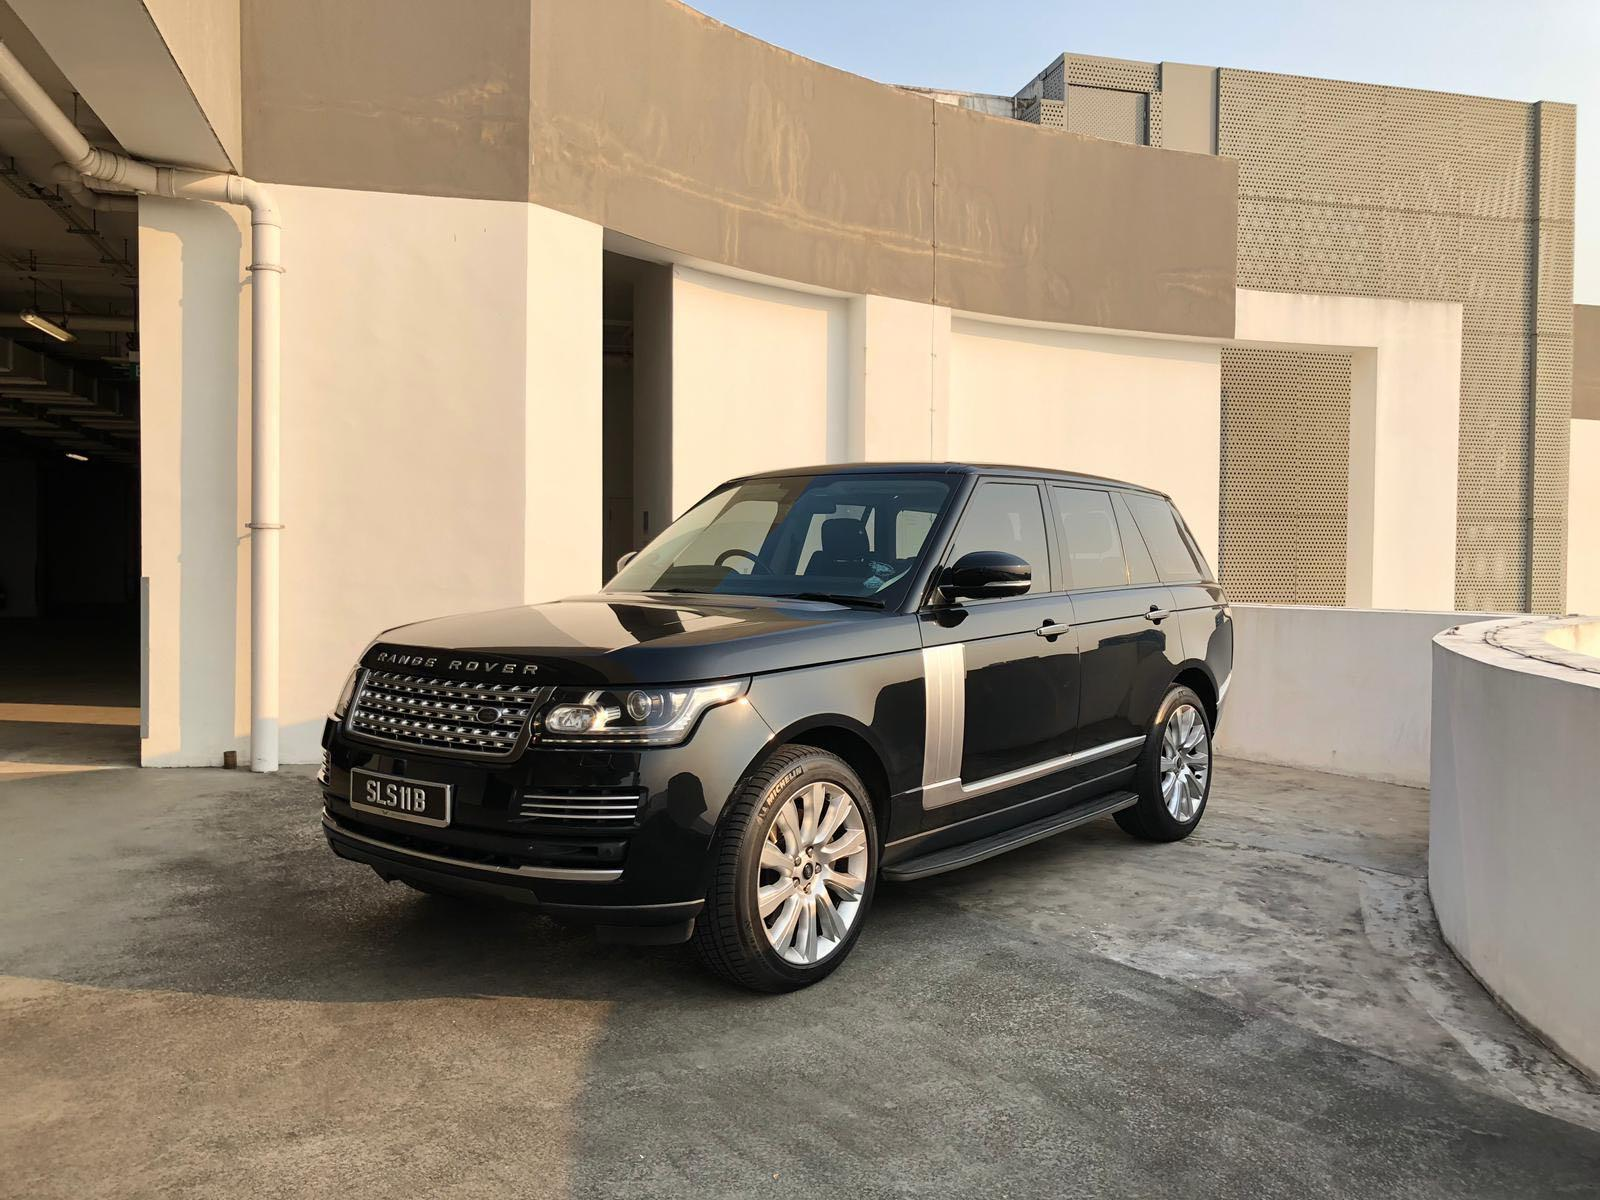 Land Rover Range Rover Sport 5.0 Supercharged Auto